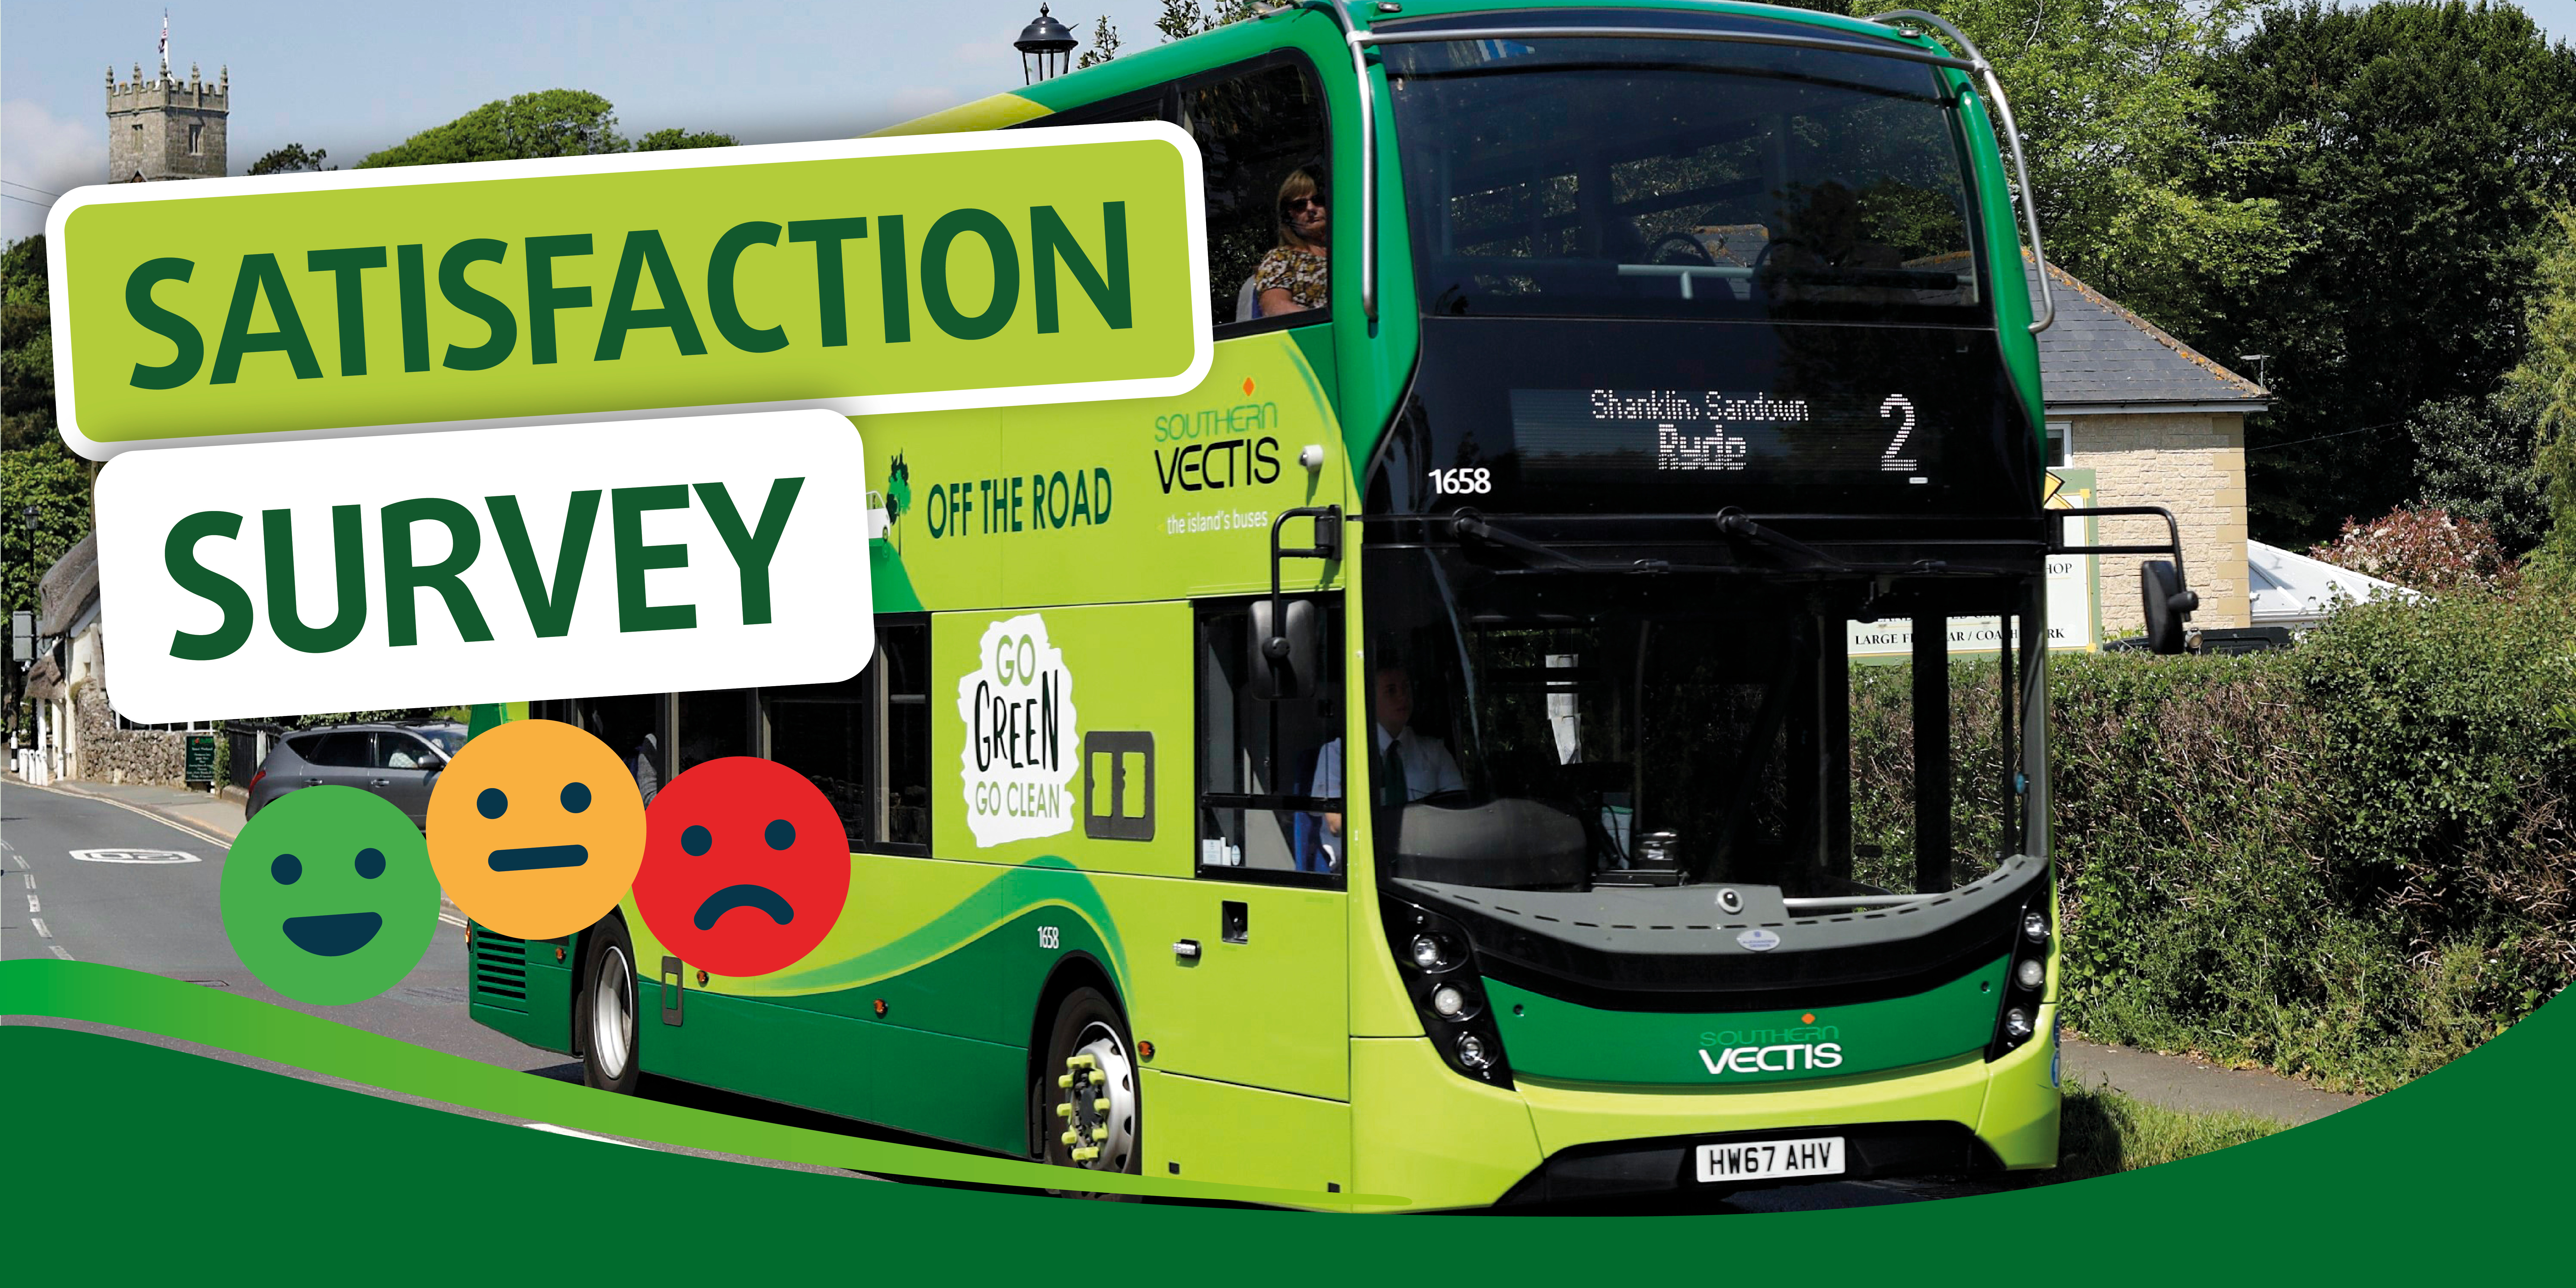 Satisfaction survey and bus image